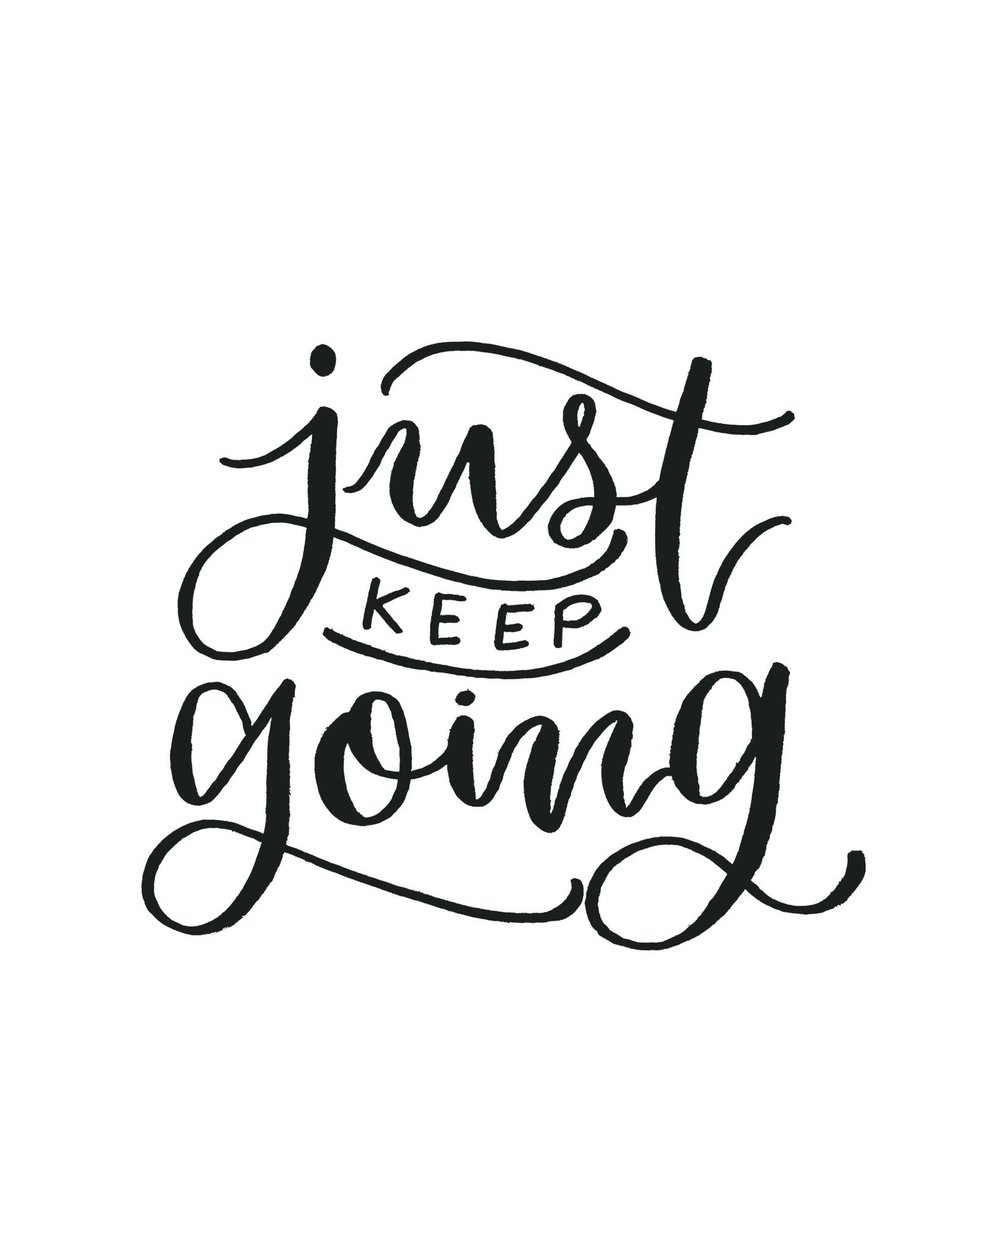 Just_Keep_Going_Printable_White.jpg